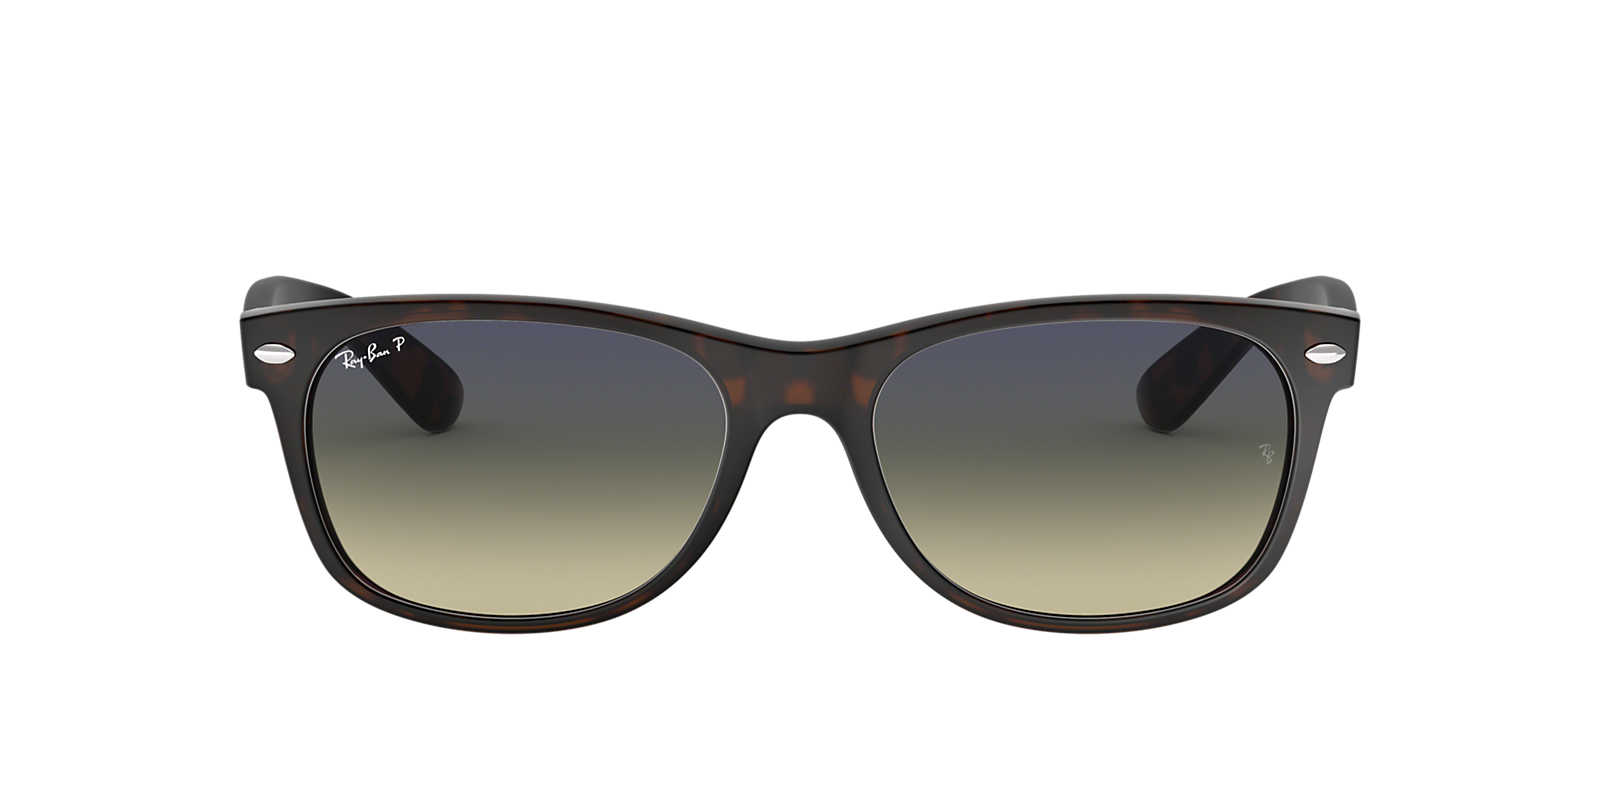 rayban googles  Ray-Ban Sunglasses - Designer Sunglasses